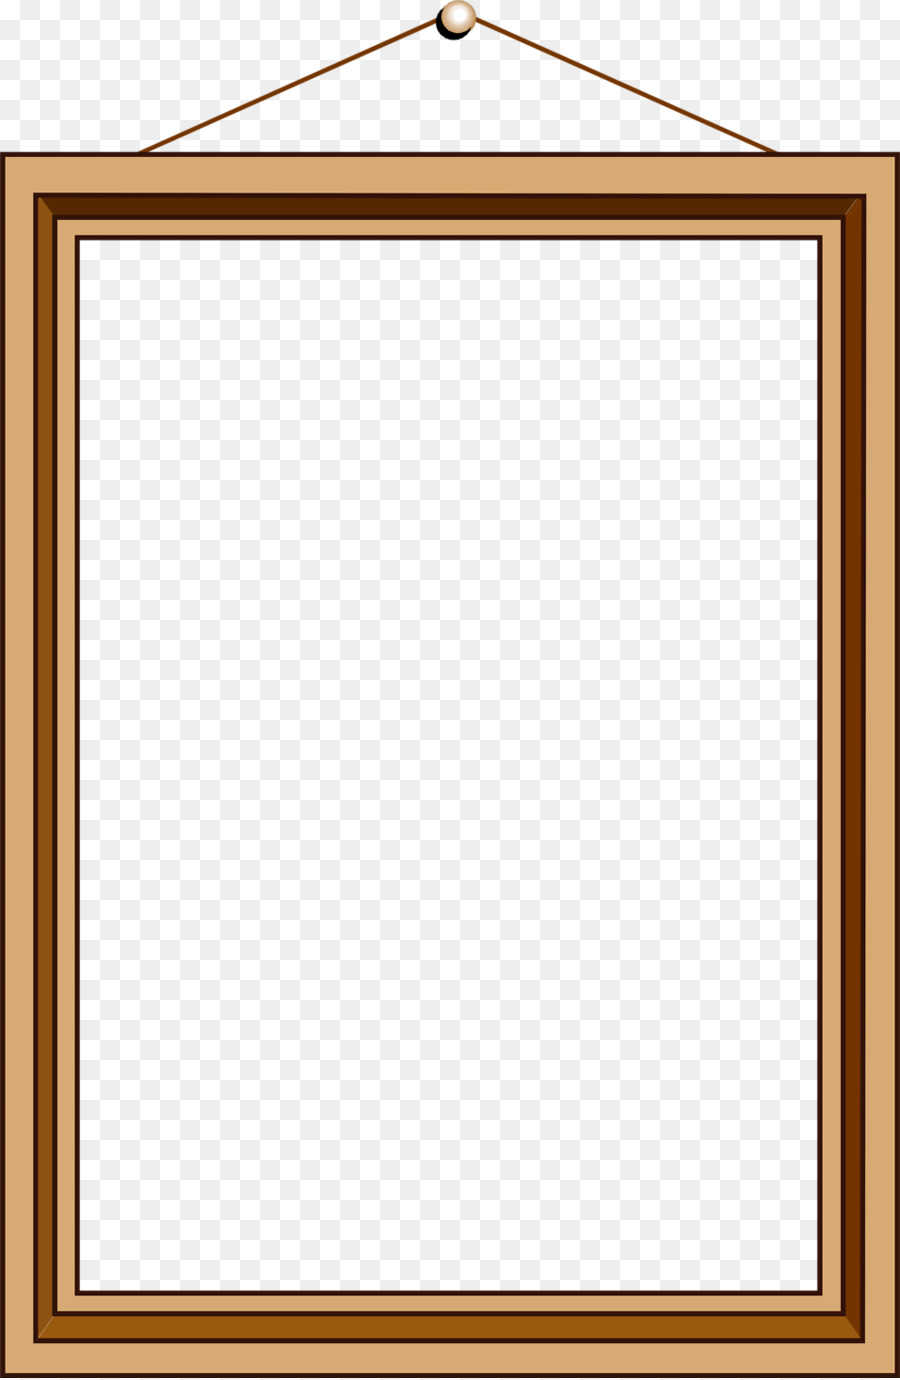 Material Picture frame - Wood Frames Cliparts png download - 958 ...